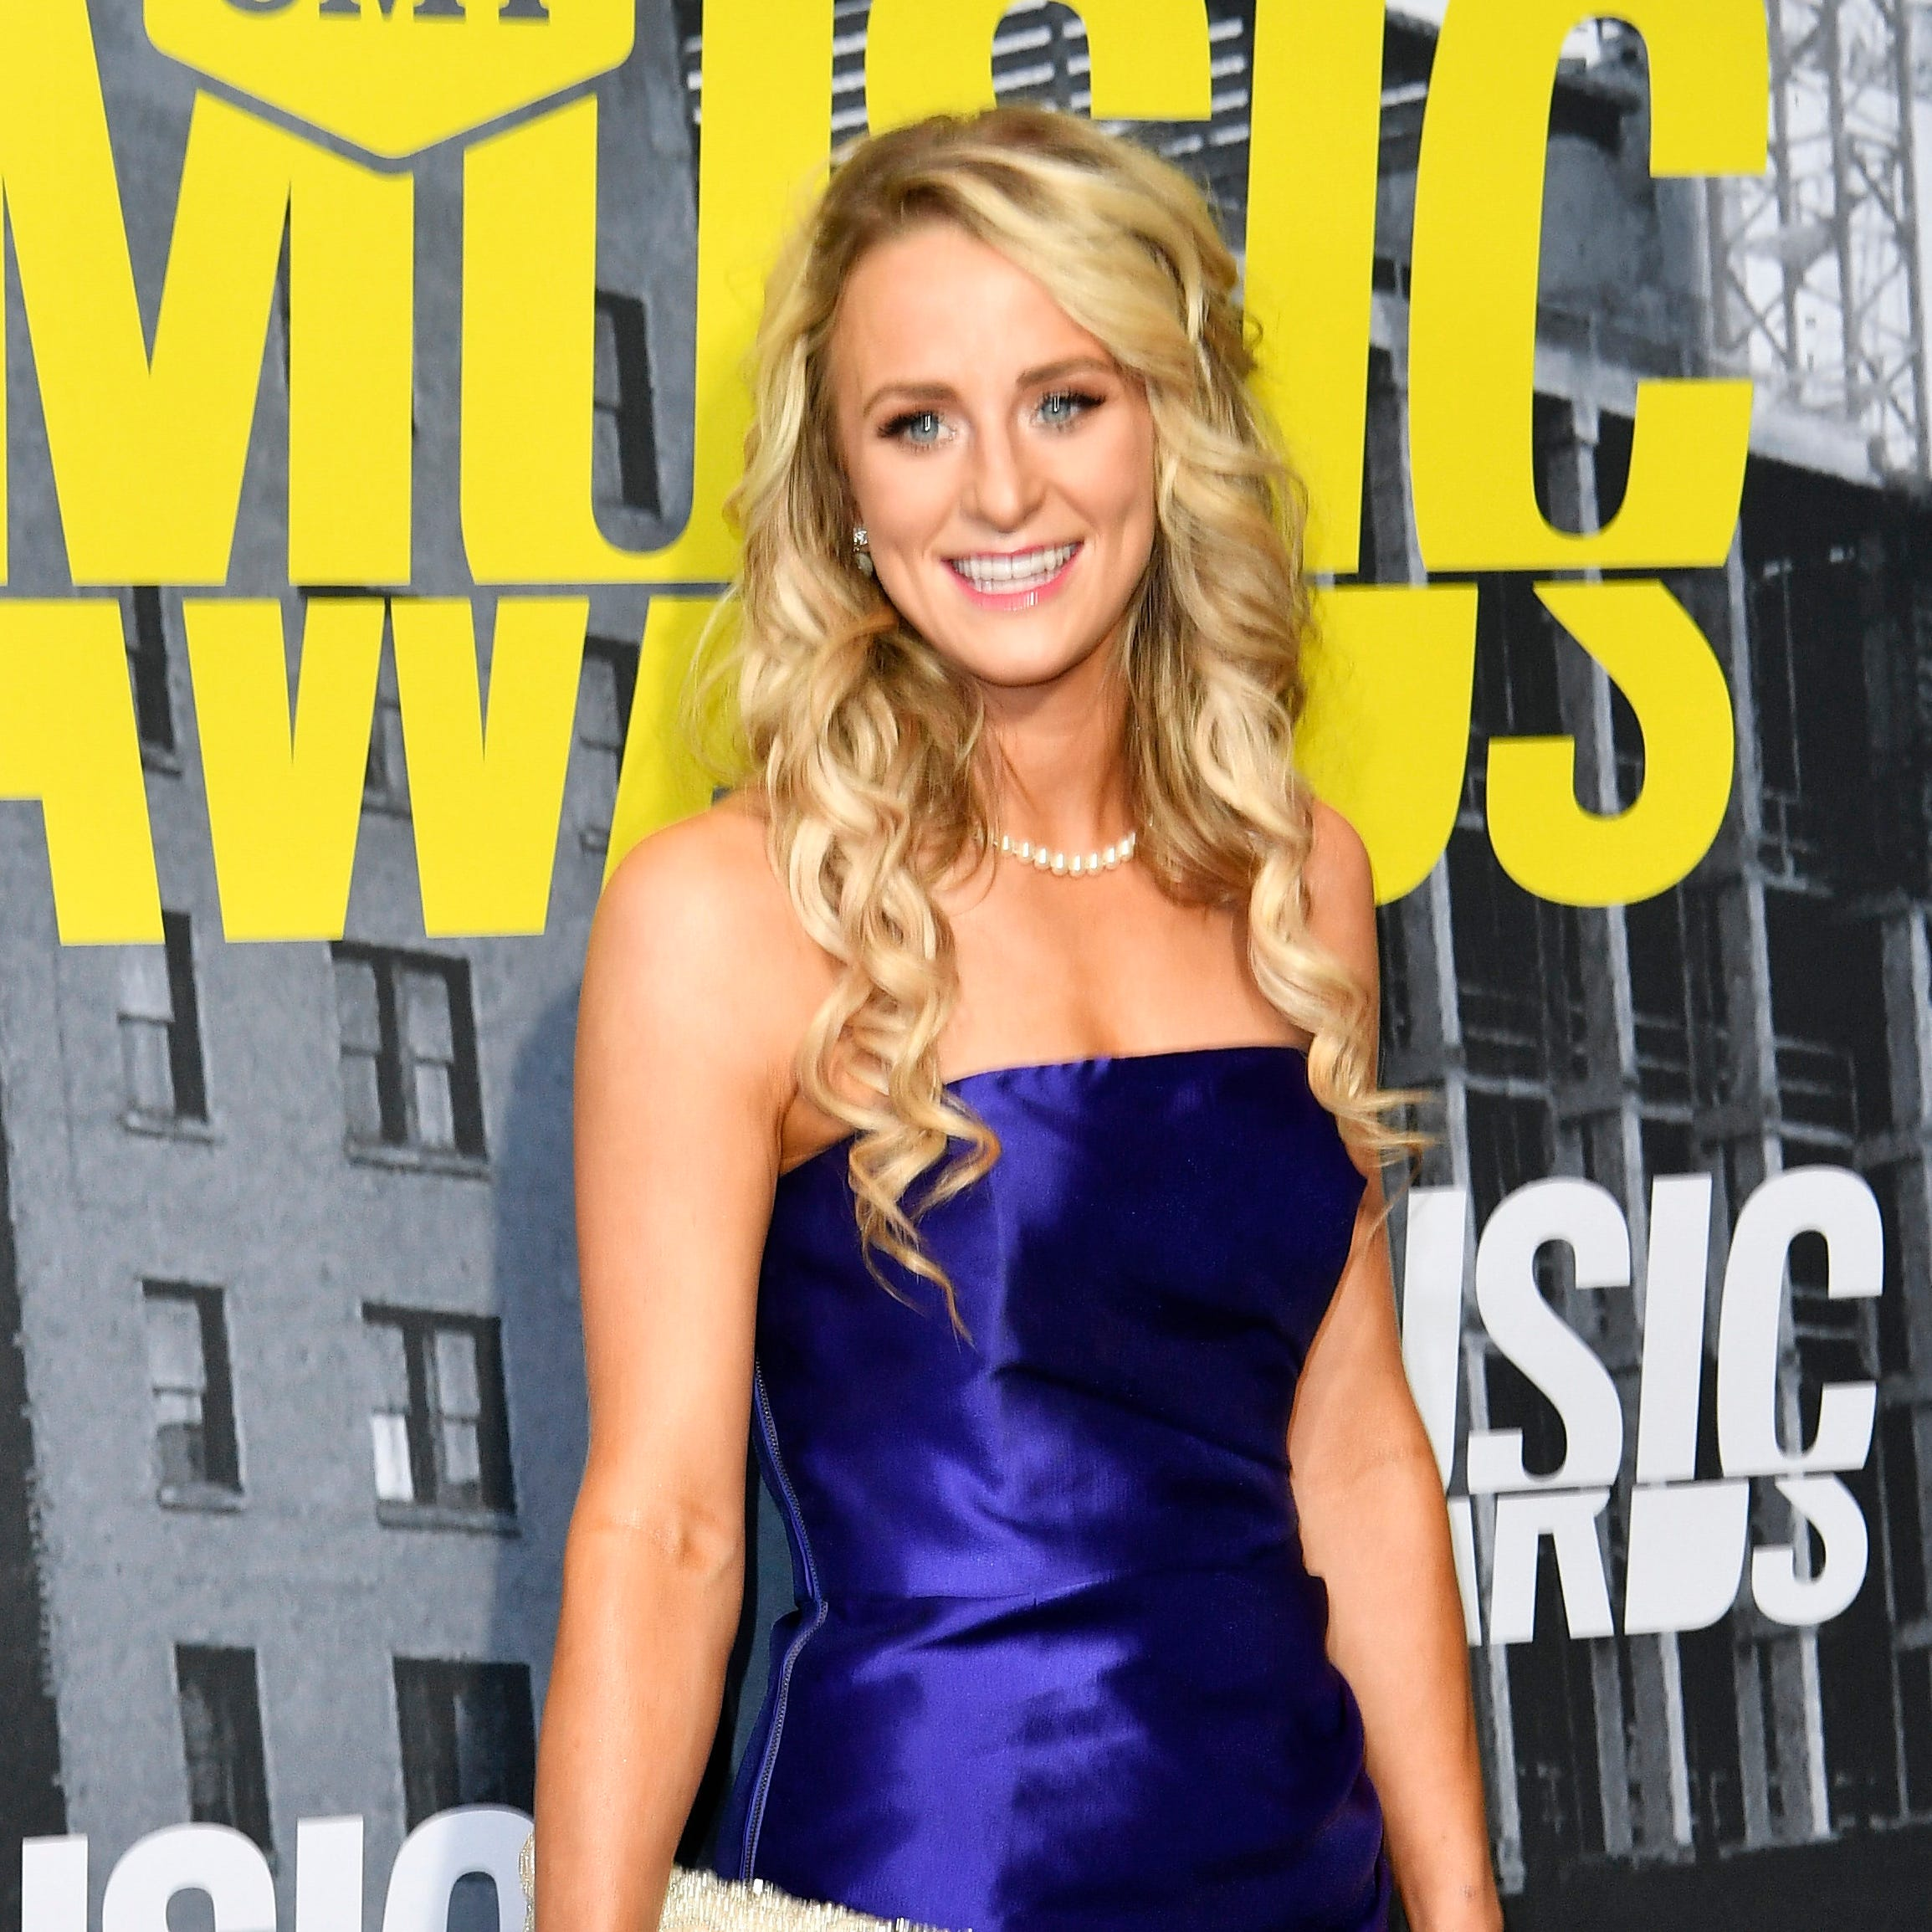 """Teen Mom"" star Leah Messer, seen here at the 2017 CMT Music Awards in Nashville, is watching over daughter Adalynn in the hospital."